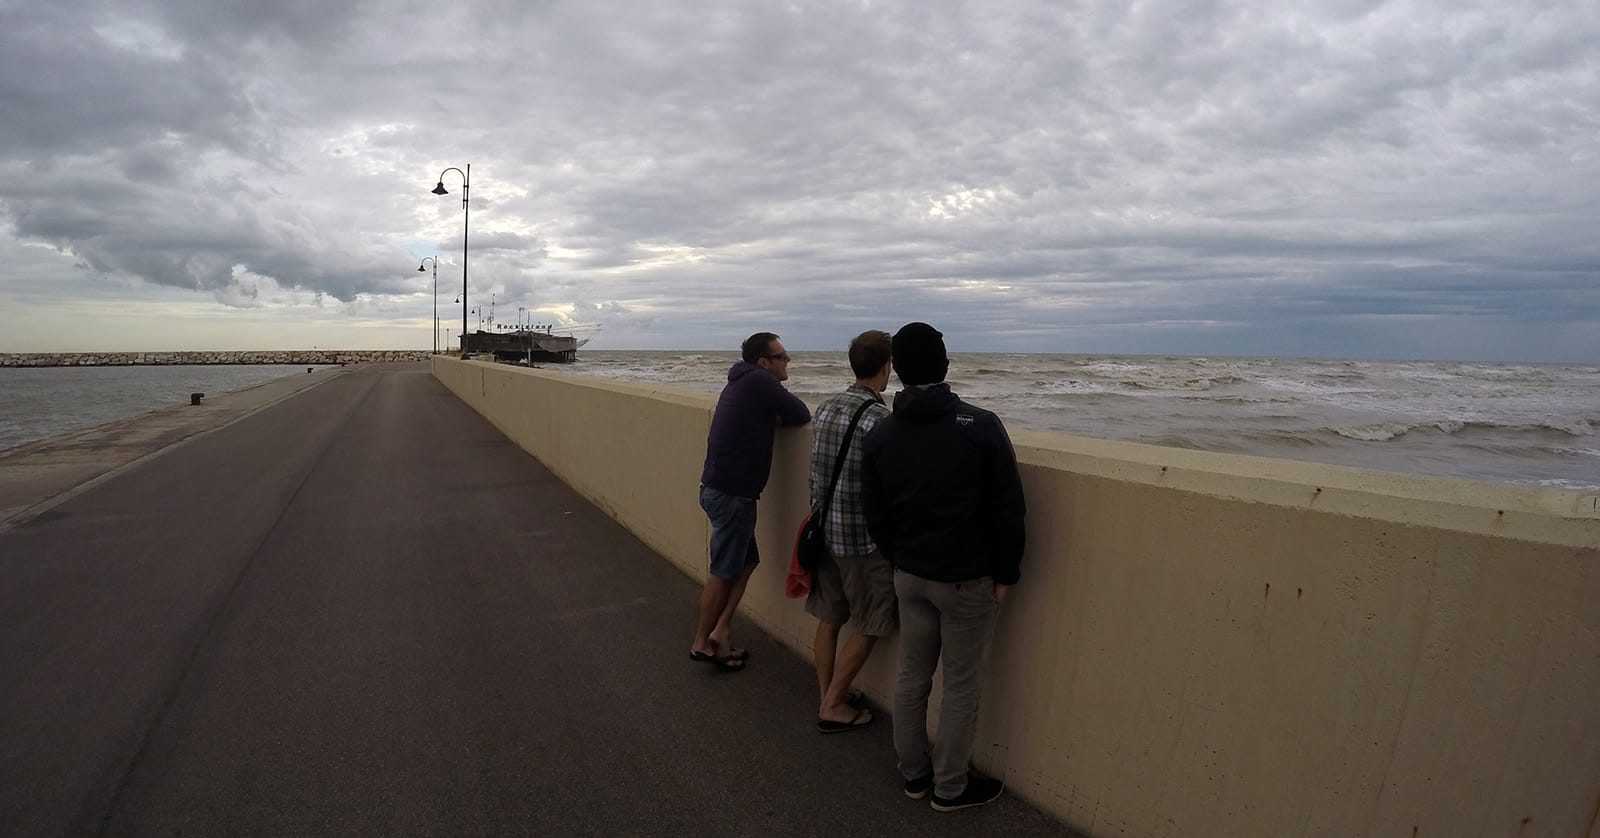 Rimini dawn patrol was not very impressive. Here is the Cioggia team looking not very impressed. One latte macchiato later wind turned offshore, sun came out, waves turned on and cosplay characters started parading through the parking lot.